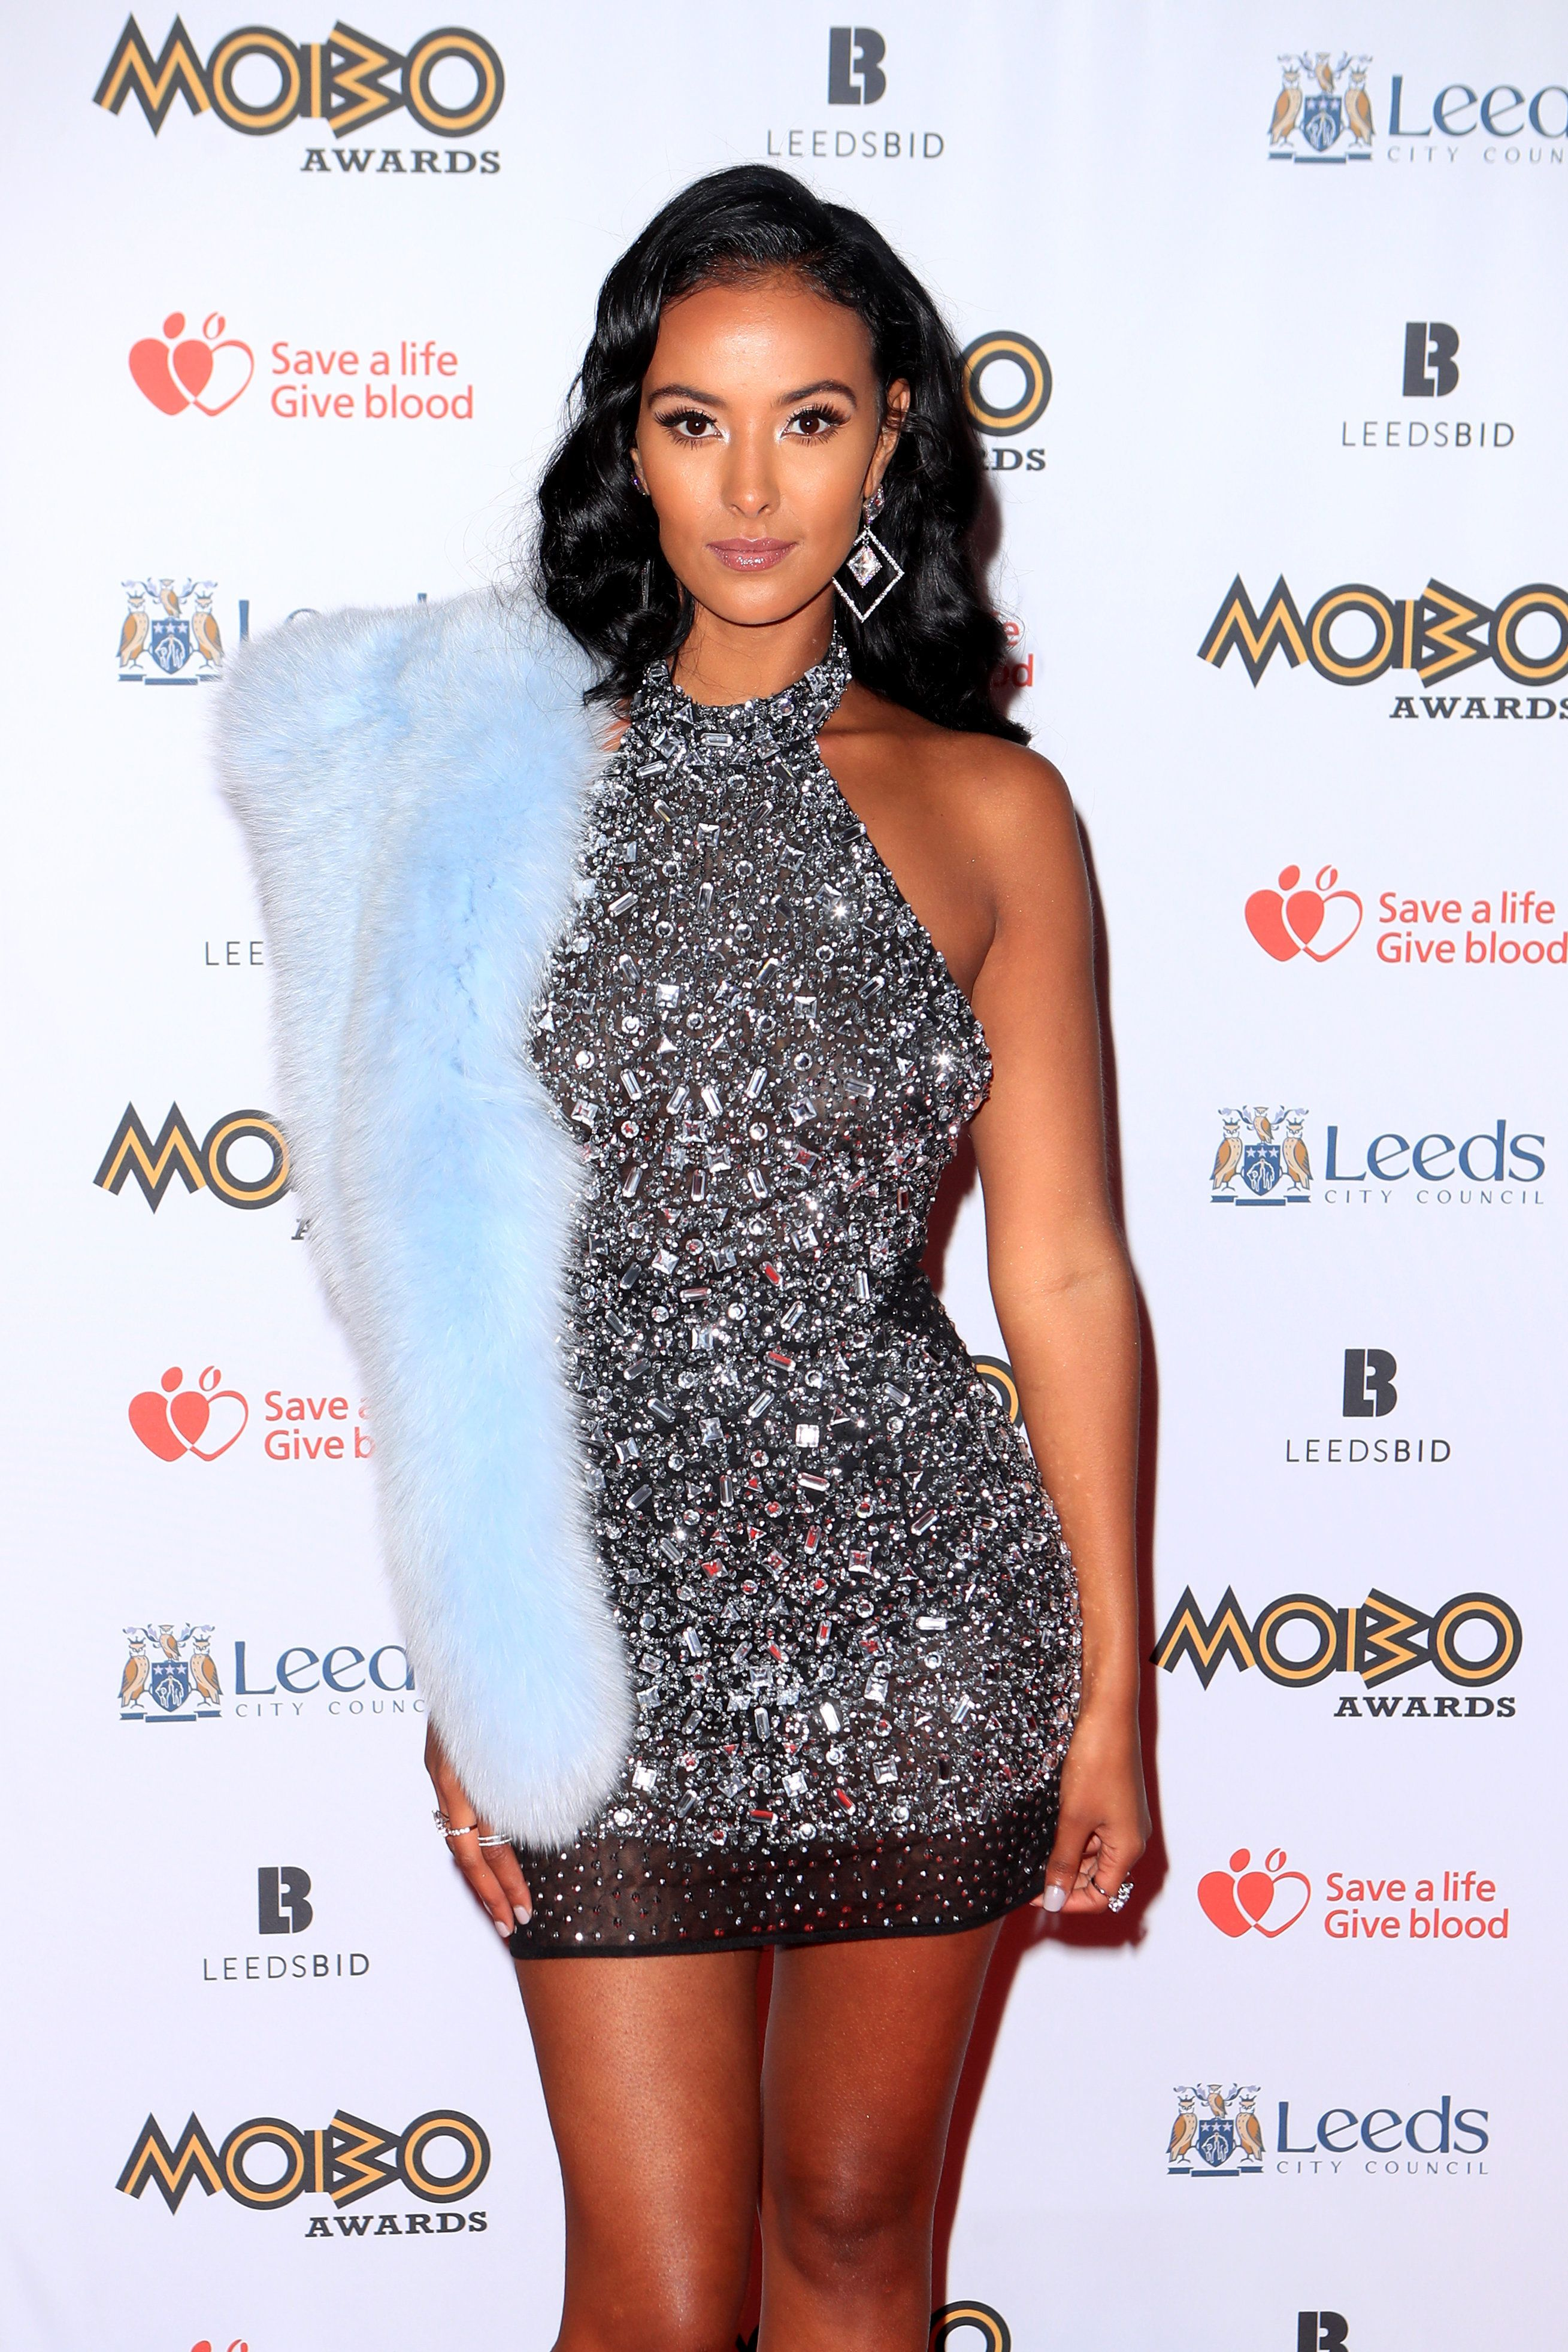 Maya Jama And Sarah Jane Crawford Twinned At The Mobo Awards Kicking Off The Sequins Trend Bodycon Dress Parties Sarah Jane Crawford Missguided